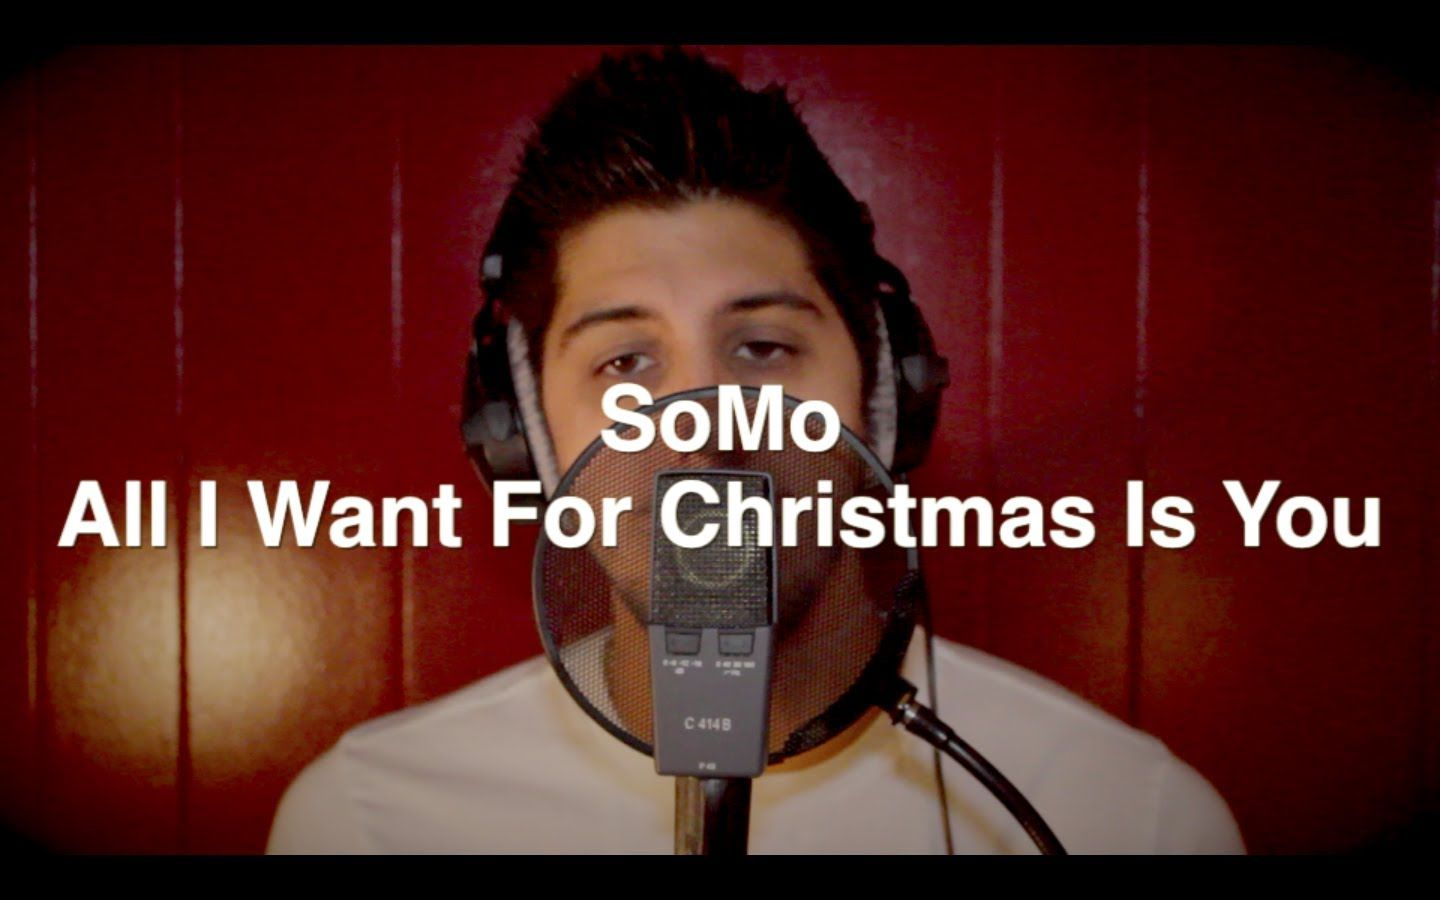 All I Want For Christmas Is You By Somo All I Want Christmas